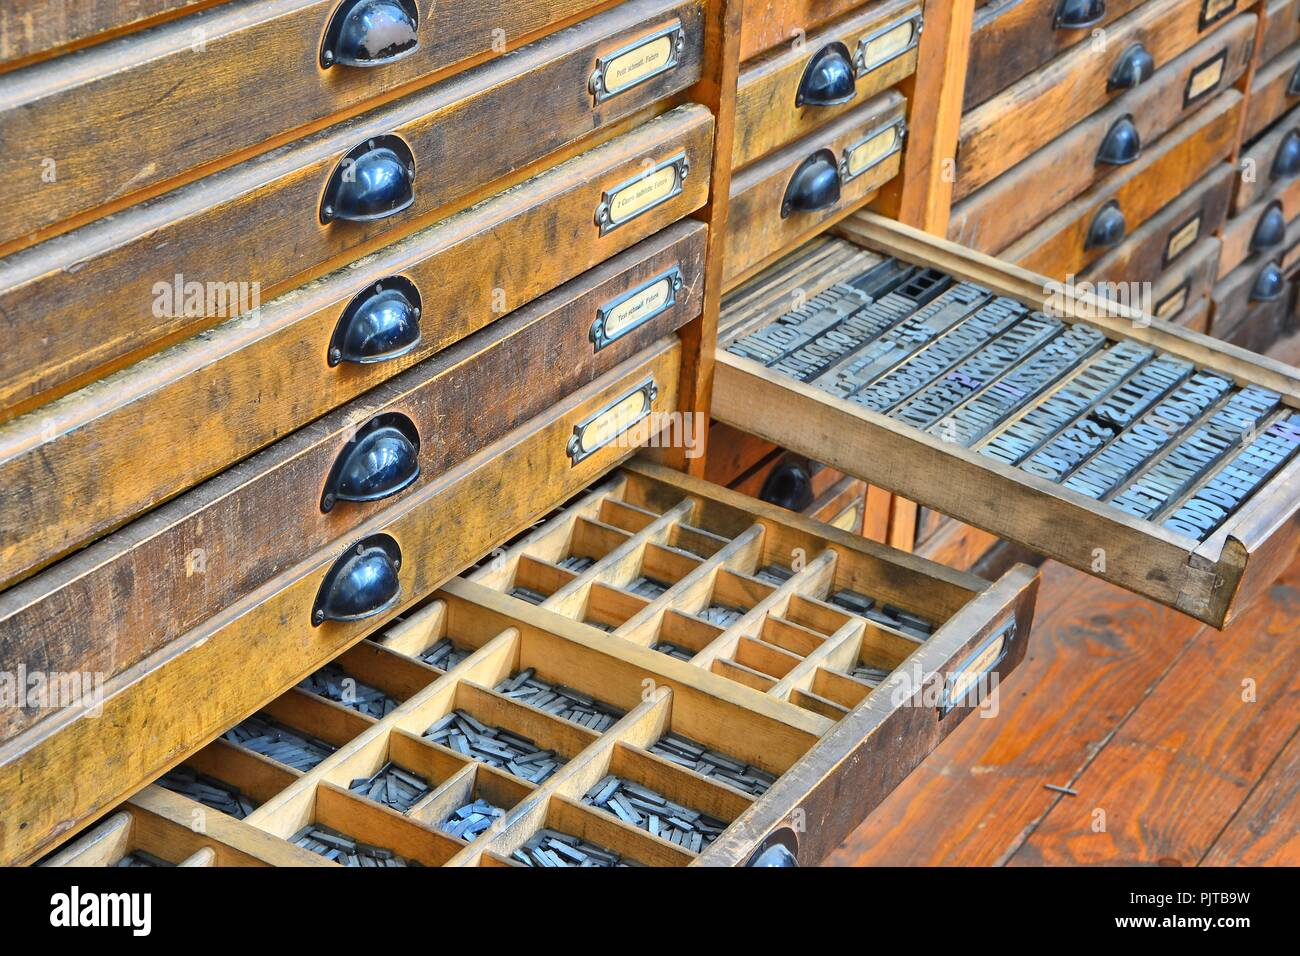 Accessories of an old printing house in the Technical Museum in Magdeburg - Stock Image